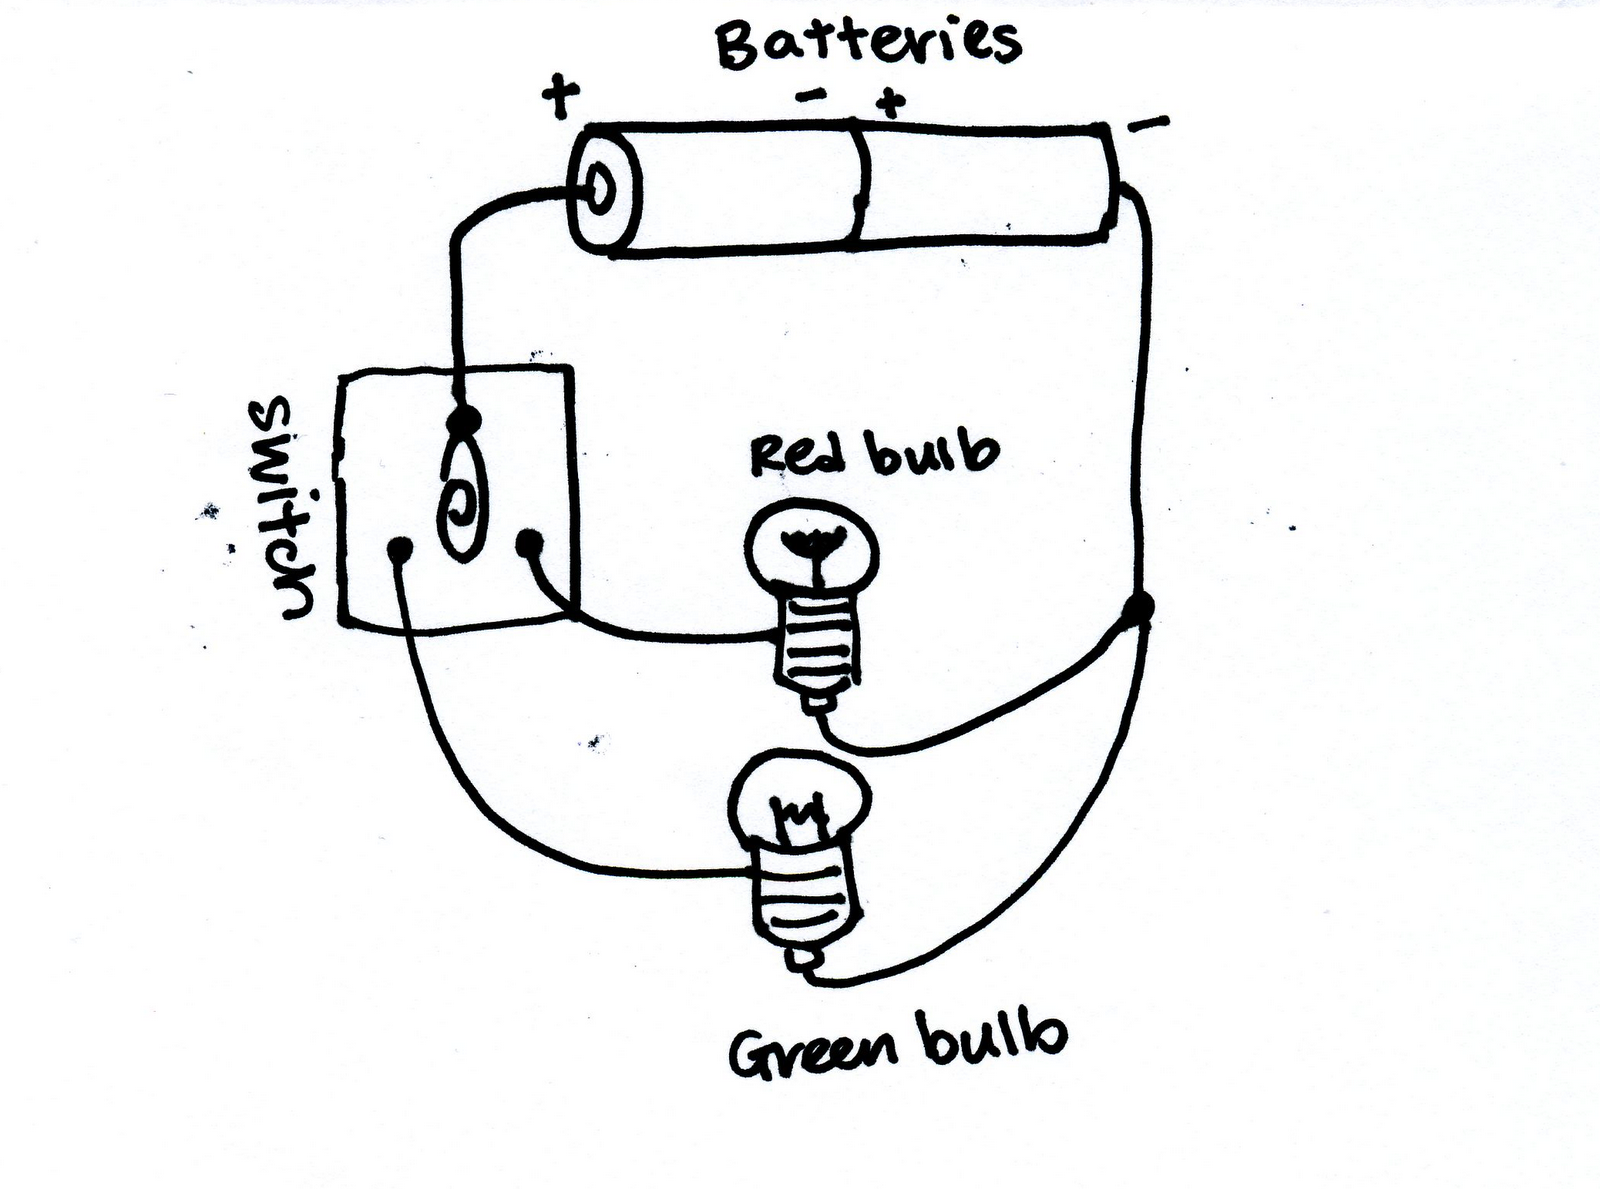 Light Bulb Battery System Diagram on Solar Panels Voltage Regulator Circuit Diagram